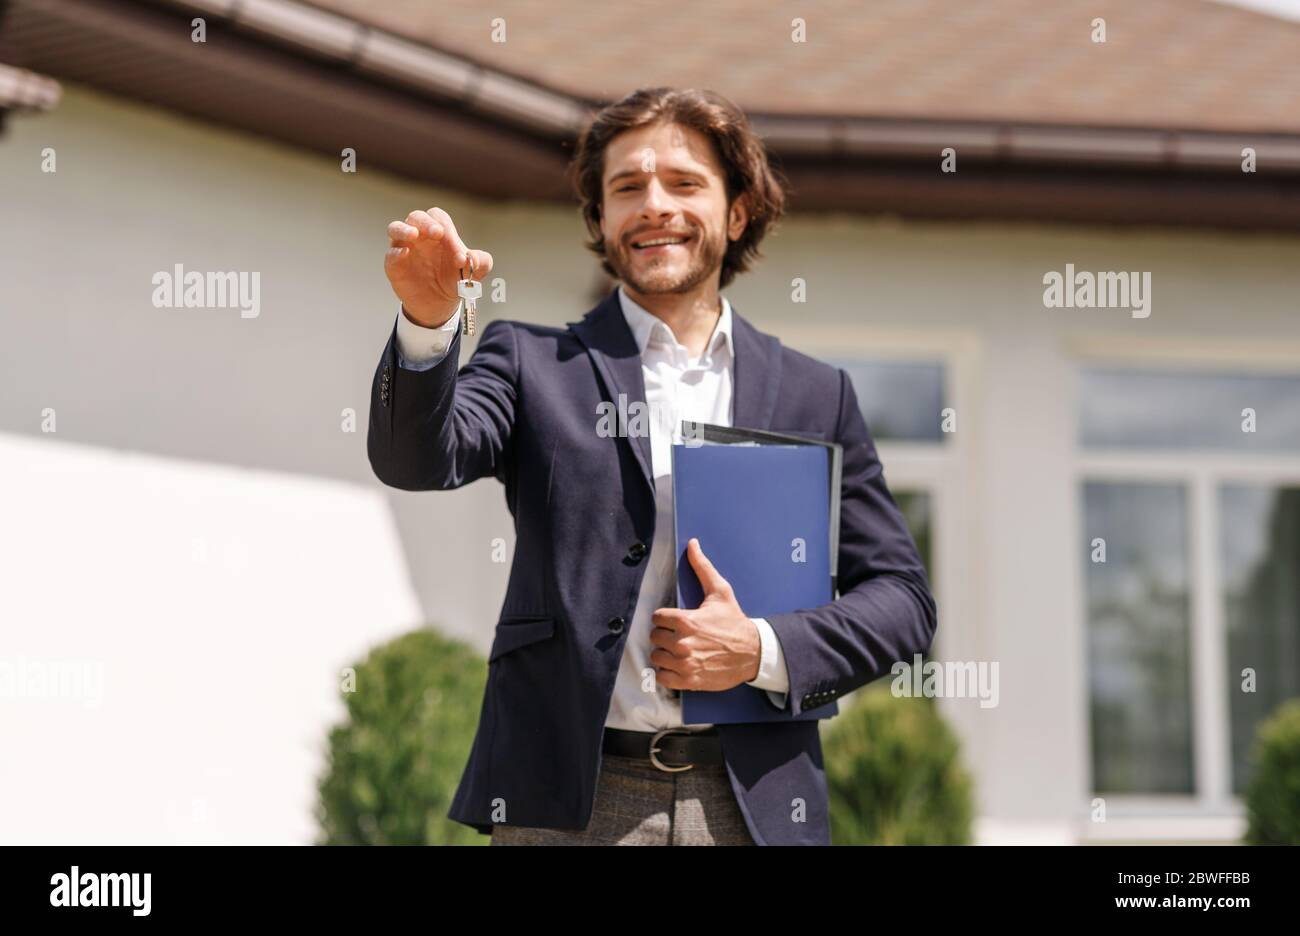 Smiling real estate agent holding house key near new residence to sale, outdoors Stock Photo